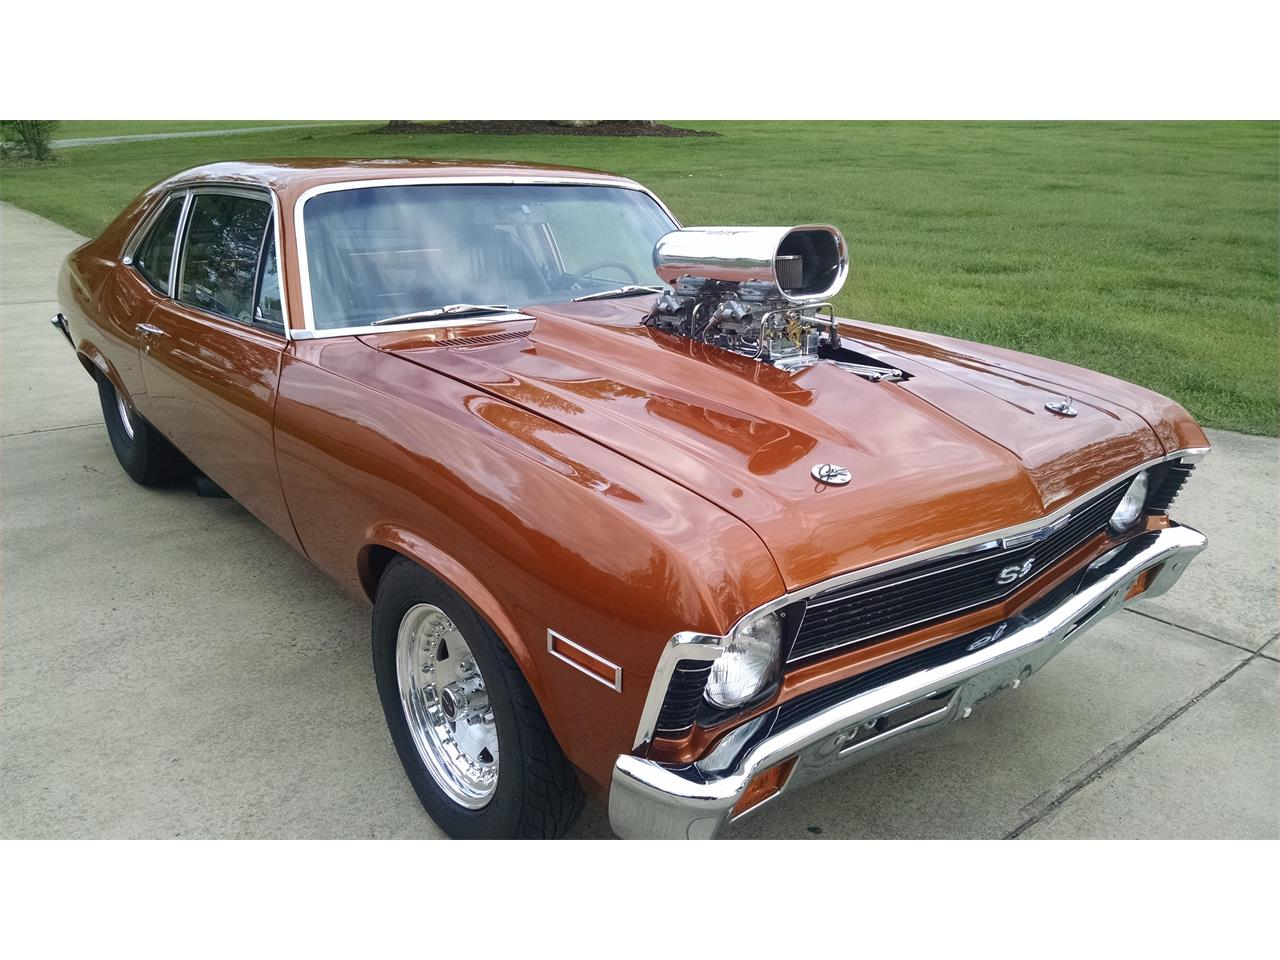 1972 chevrolet nova ss for sale classiccars cc 1032609 72 Chevy Impala large picture of 72 nova ss m4rl